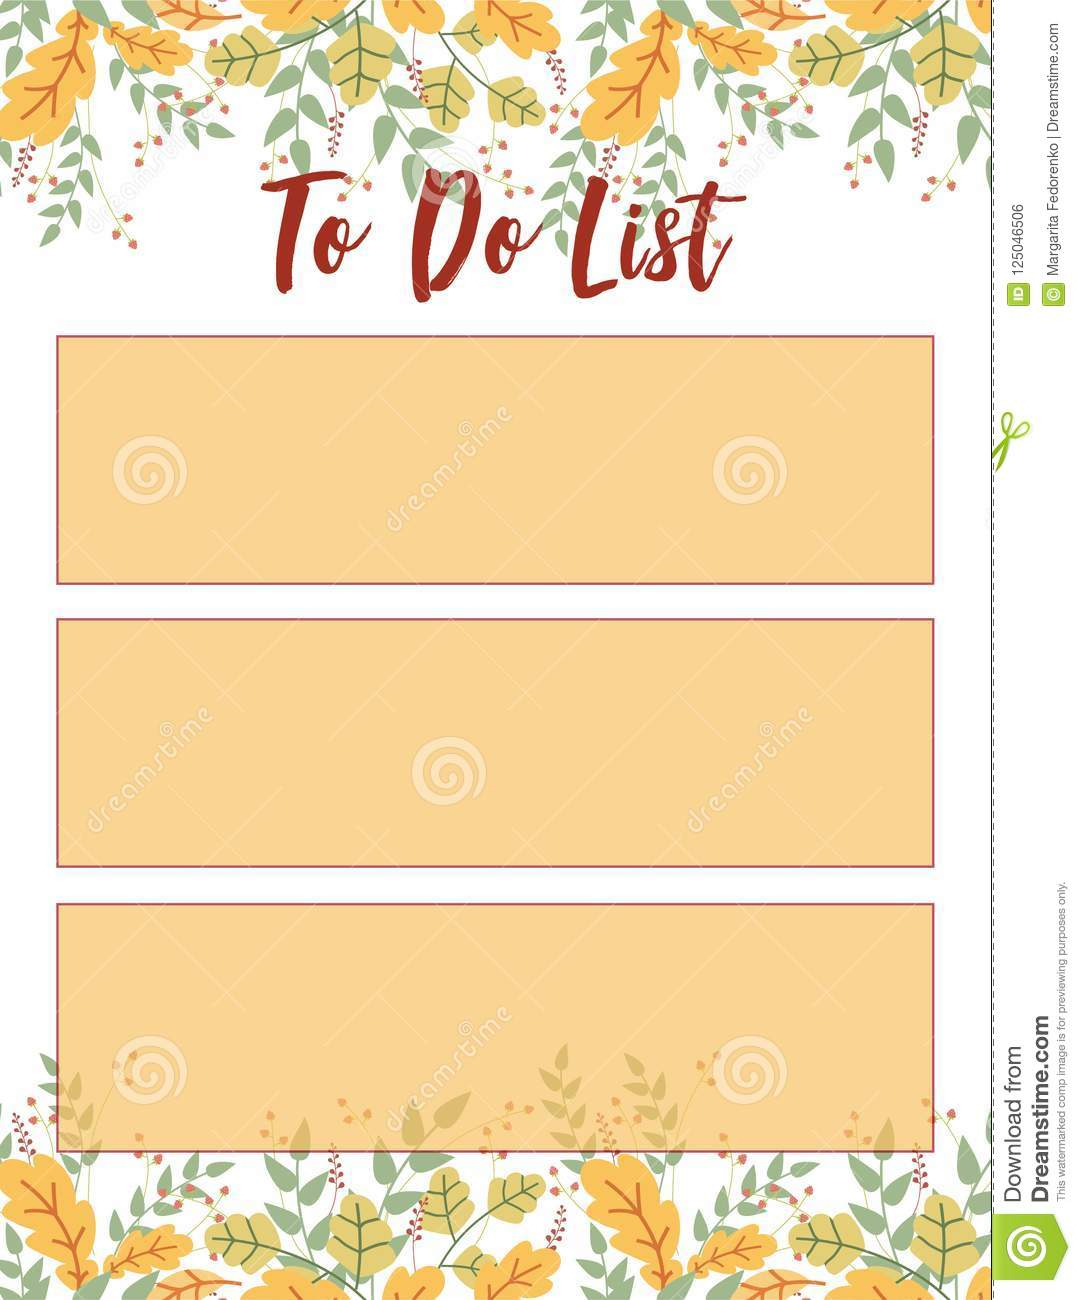 To Do List Stock Vector. Illustration Of Monday, Friday